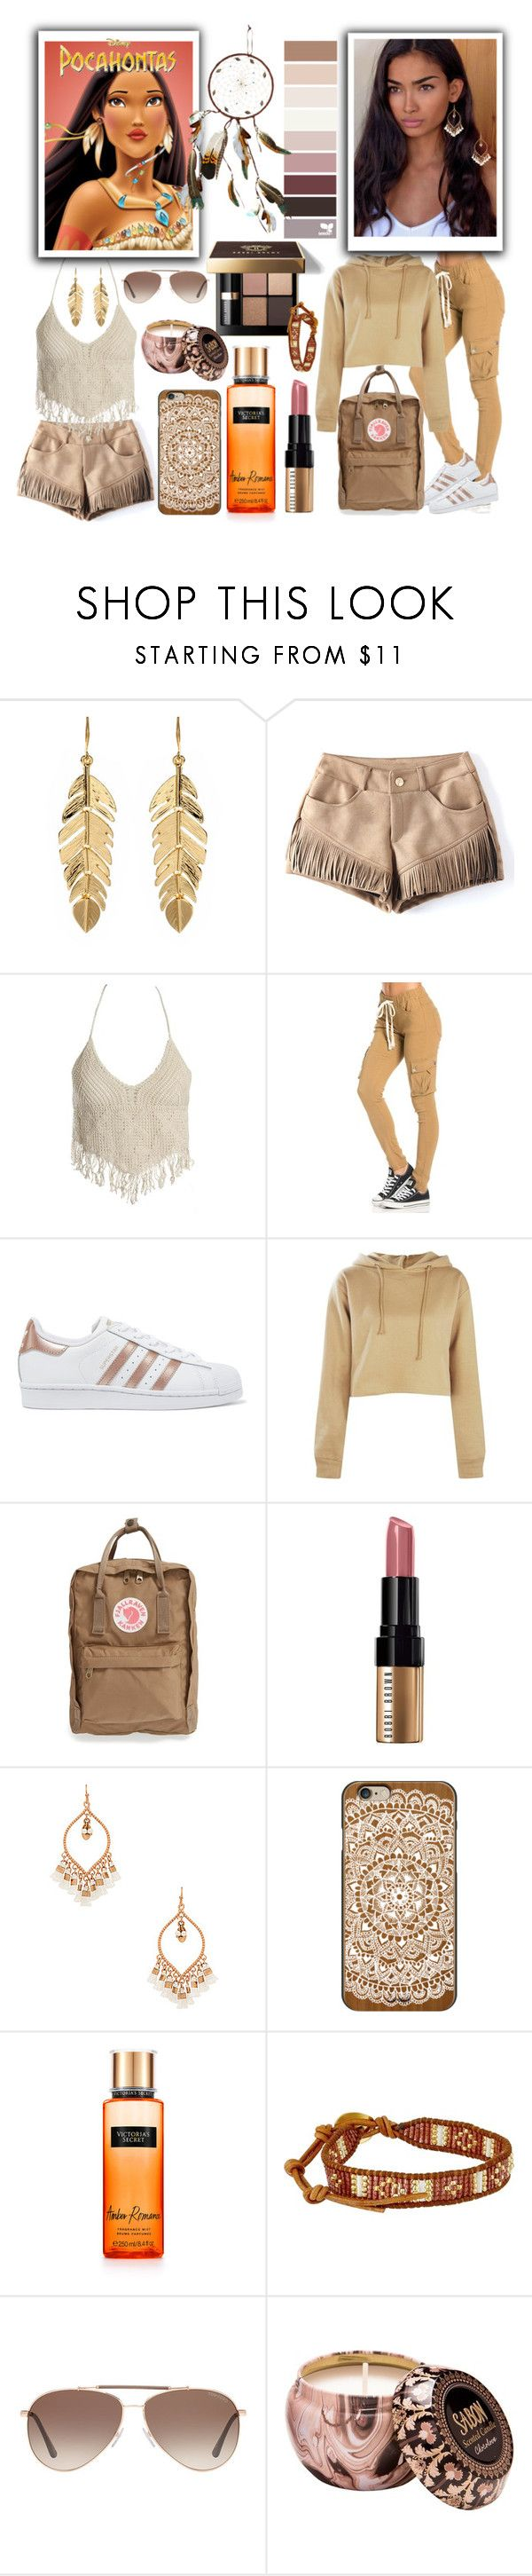 """2 different outfits pocahontas could wear 😍💭"" by anoo17k ❤ liked on Polyvore featuring Disney, Amrita Singh, Sans Souci, adidas Originals, Bobbi Brown Cosmetics, Boohoo, Fjällräven, Shashi, Casetify and Victoria's Secret"